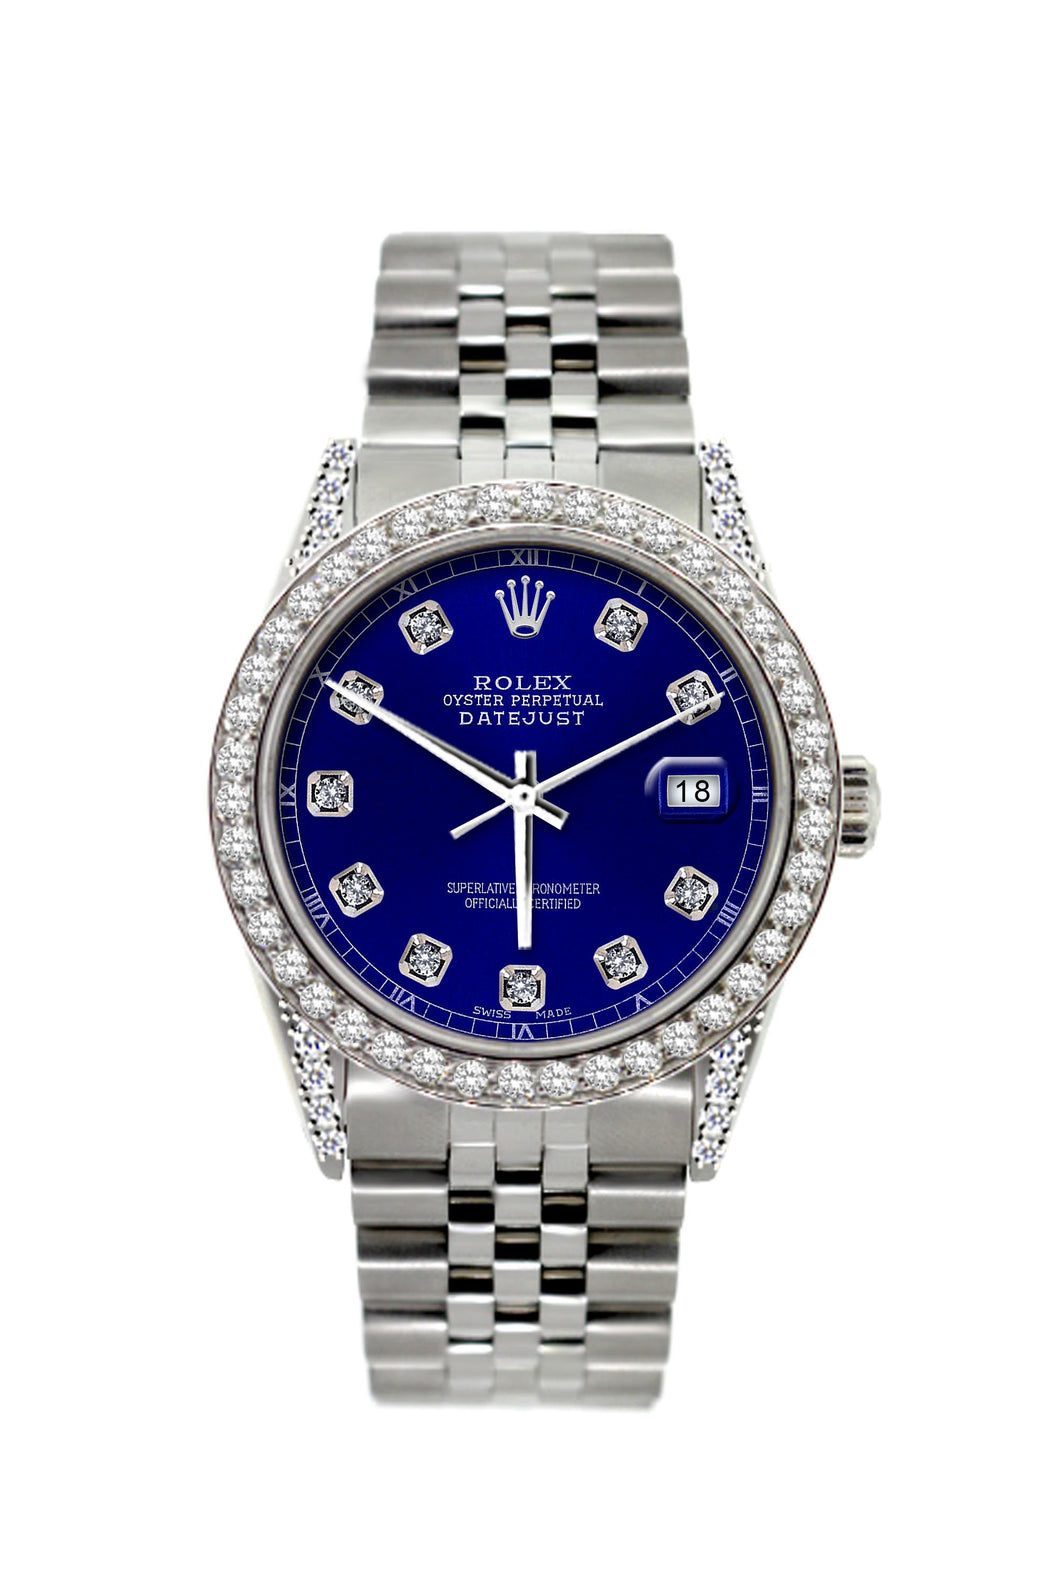 Rolex Datejust 36mm Stainless Steel Dark Blue Dial w/ Diamond Bezel and Lugs